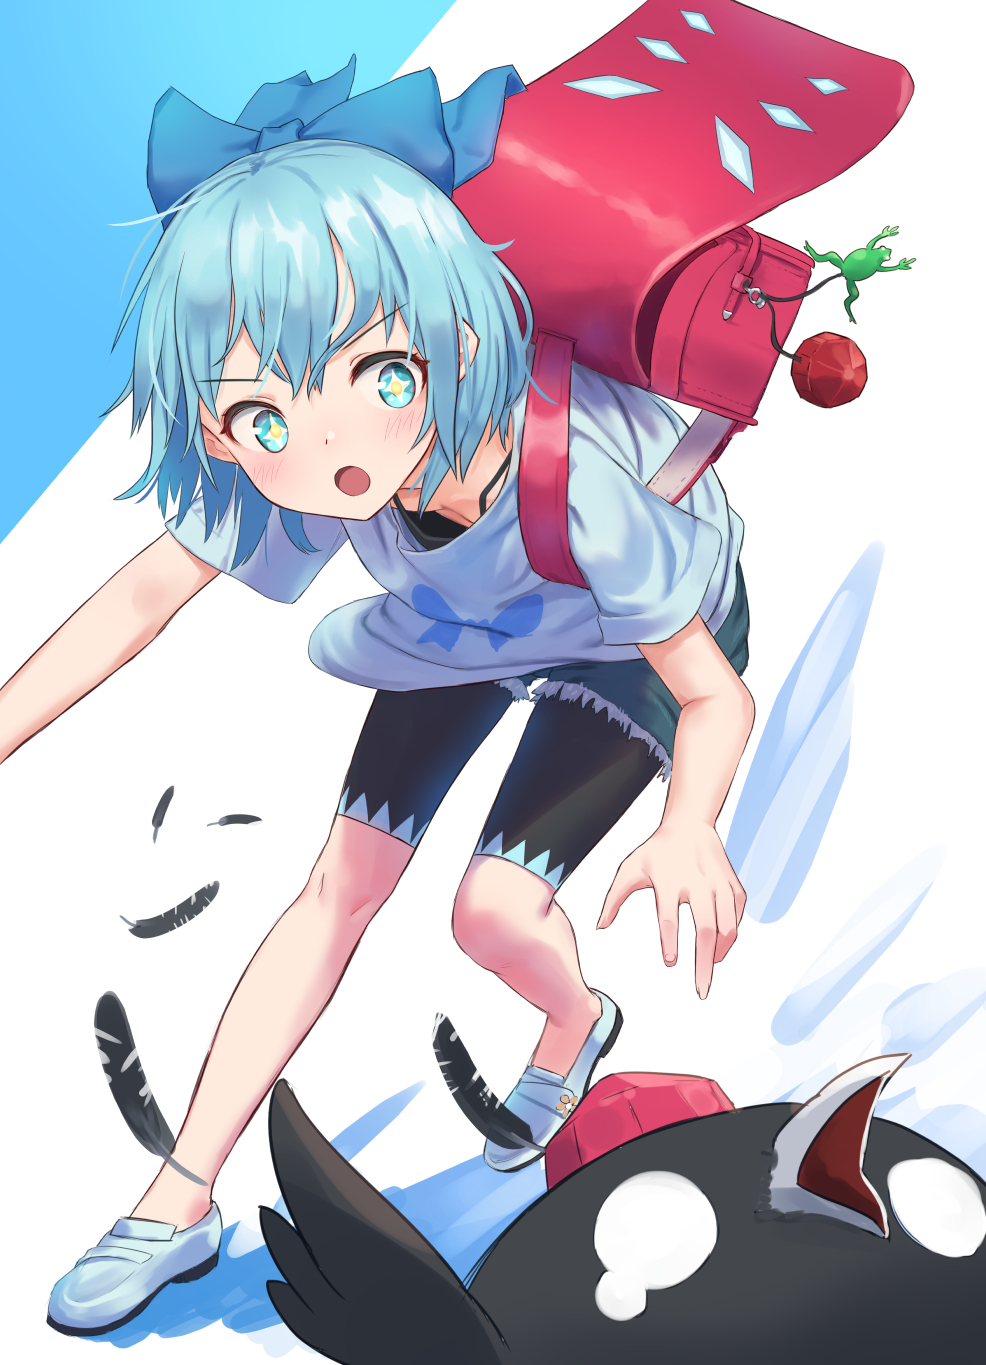 +_+ 1girl :o alternate_costume backpack bag bangs bent_over bike_shorts bike_shorts_under_shorts bird black_shorts blue_background blue_bow blue_eyes blue_footwear blue_hair blue_shirt blush bow casual cirno commentary contemporary crow cutoffs denim denim_shorts downblouse eyebrows_visible_through_hair feathers hair_bow hat highres loafers looking_at_another o_o open_mouth roke_(taikodon) shameimaru_aya_(crow) shirt shoes short_hair short_shorts short_sleeves shorts solo standing t-shirt tears tokin_hat touhou two-tone_background v-shaped_eyebrows white_background